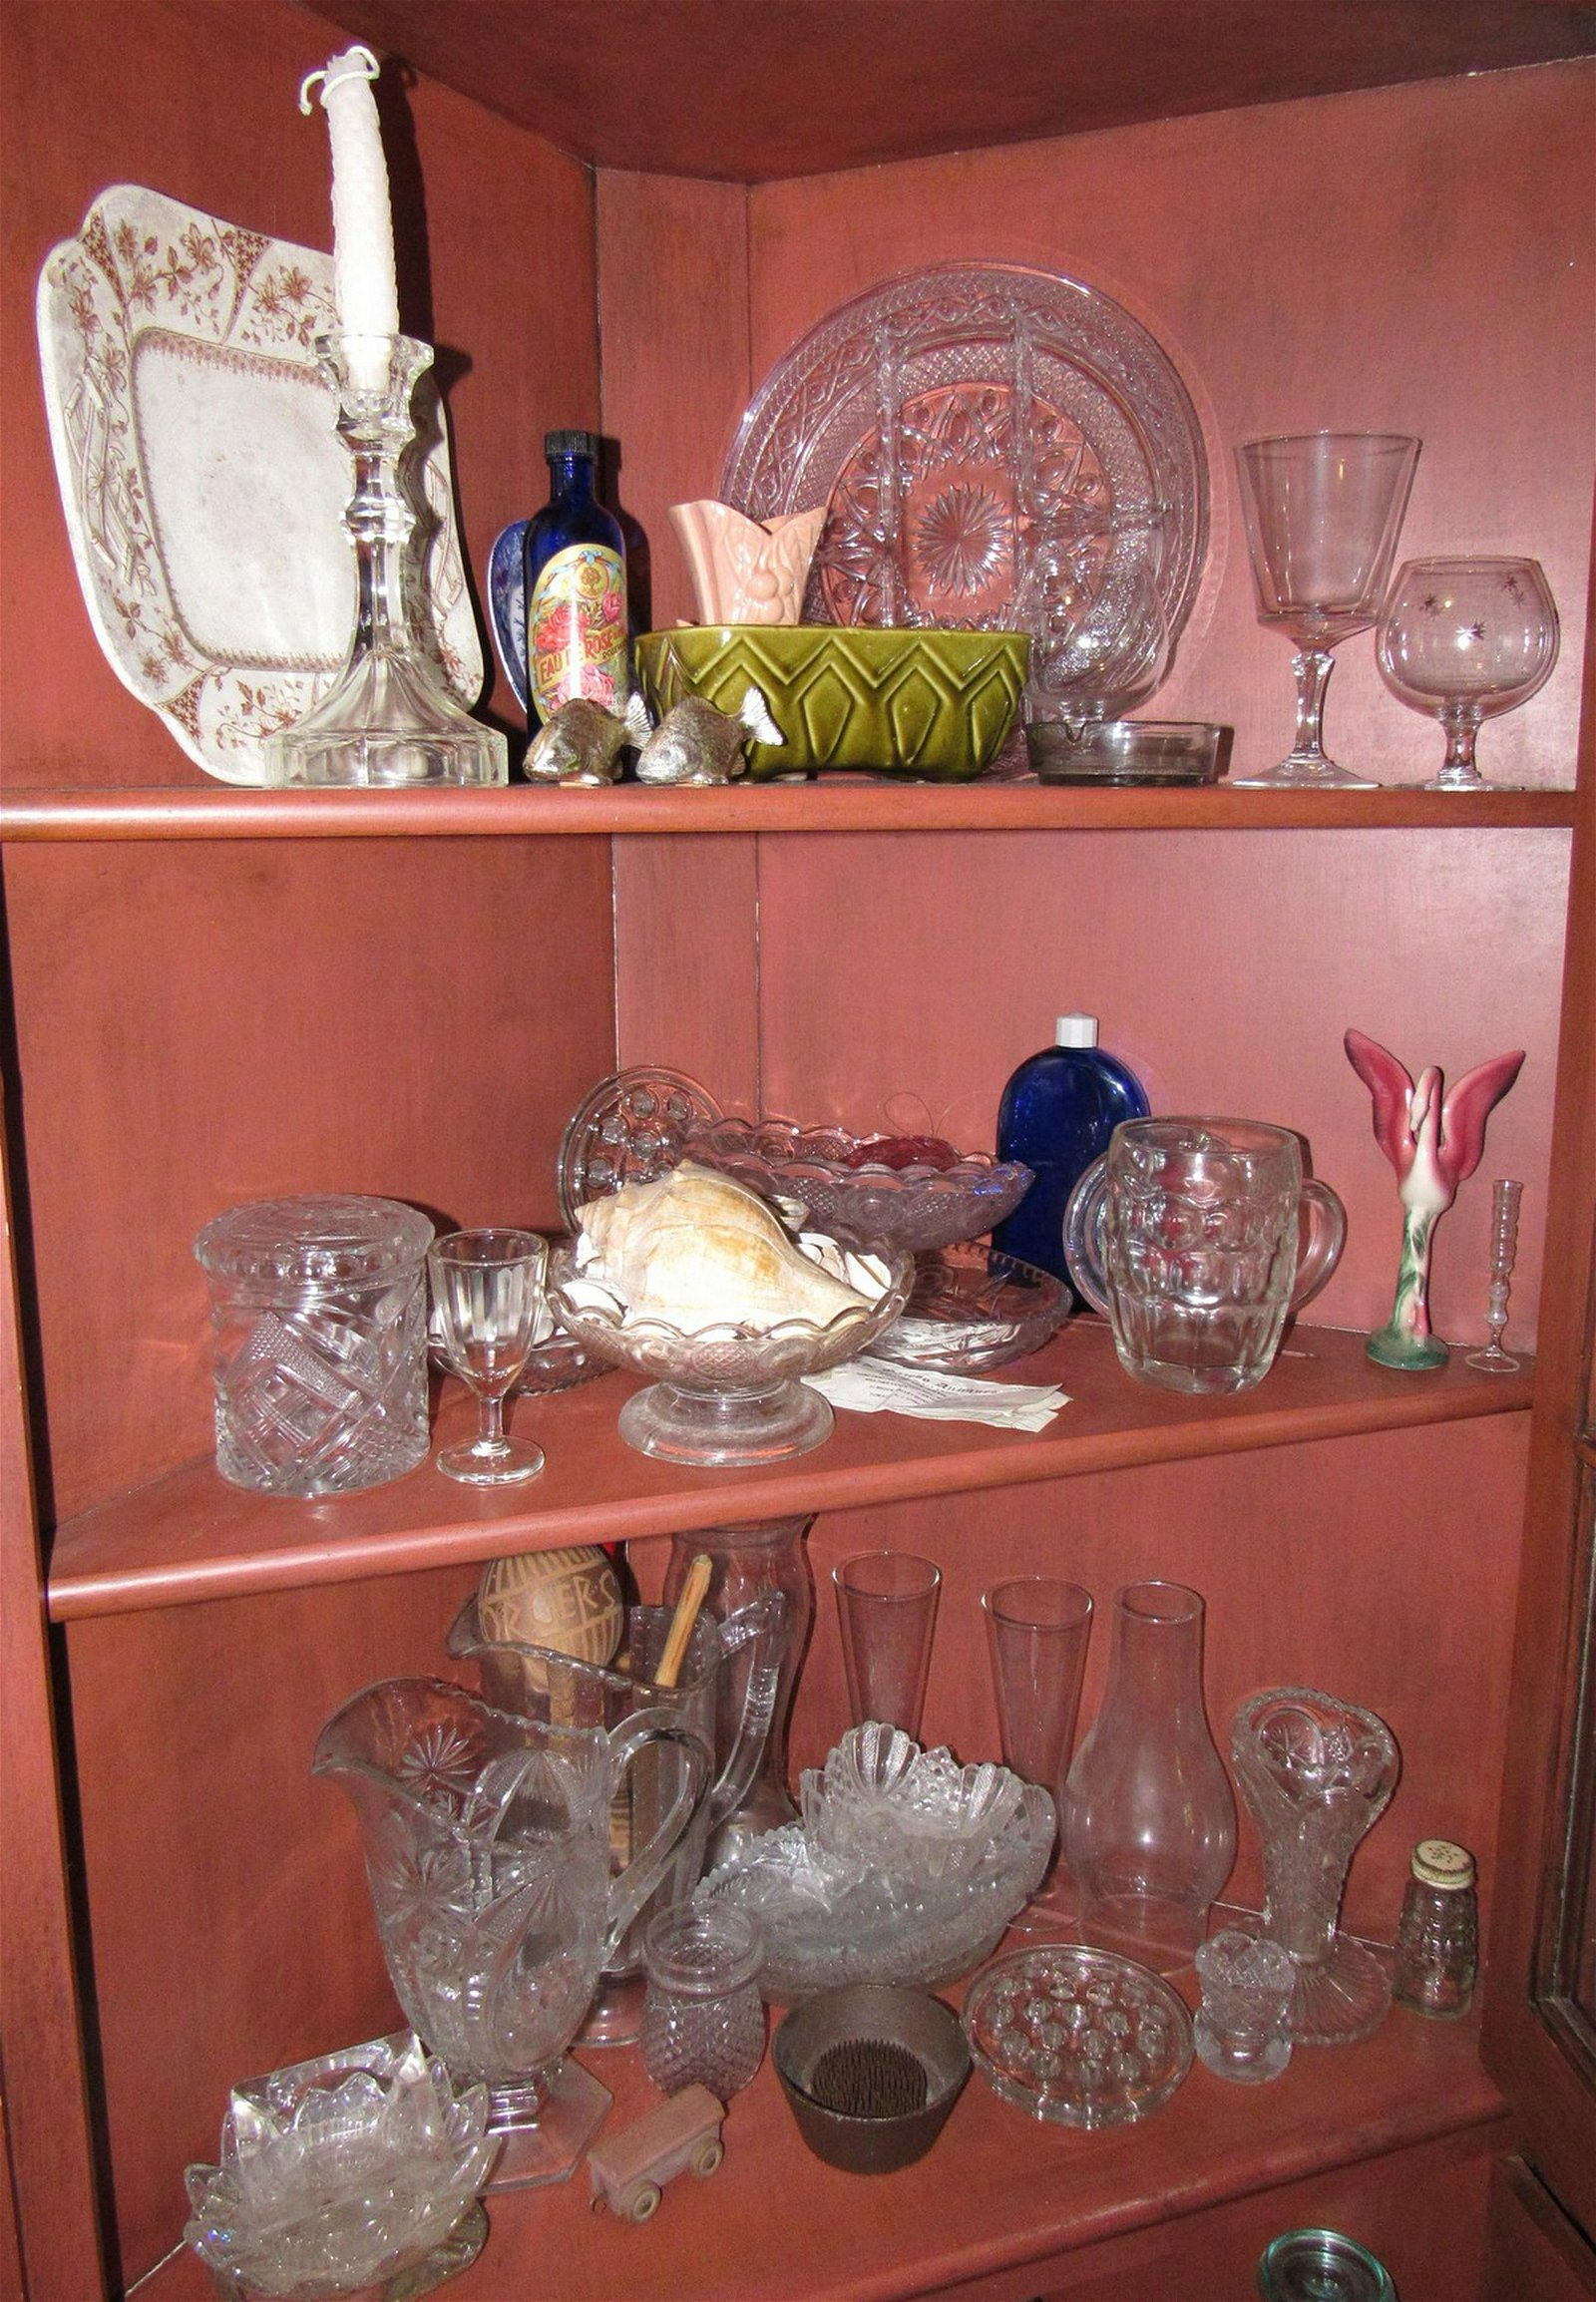 Contents of 3 Shelves Glassware Divided Dish Candy Dish